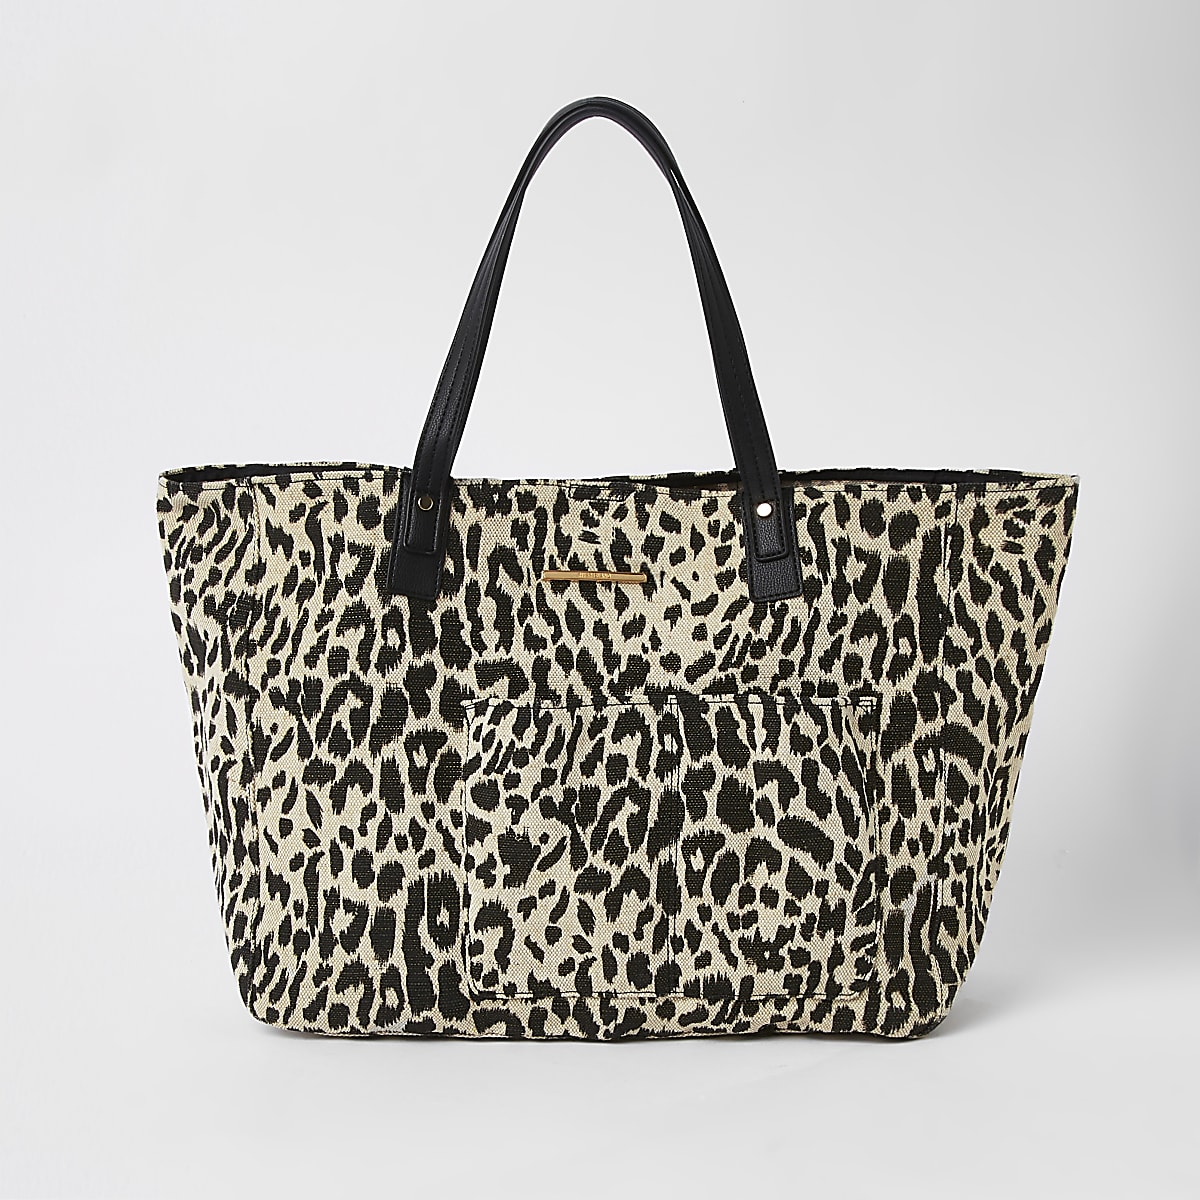 c82d9ec07 White leopard print beach tote bag - Shopper & Tote Bags - Bags & Purses -  women